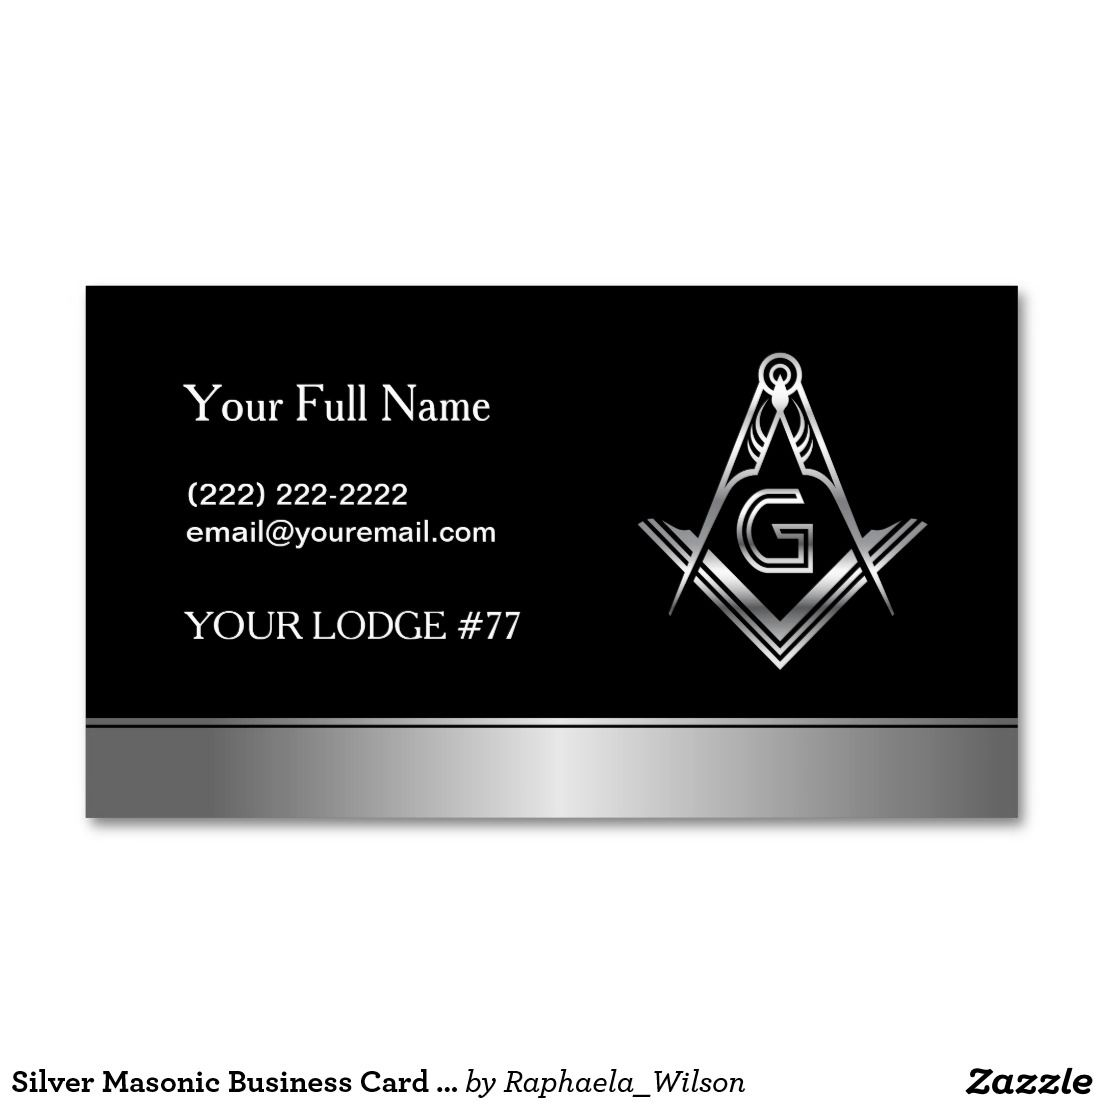 Create Your Own Profile Card Zazzle Com Business Card Template Cards Printing Double Sided